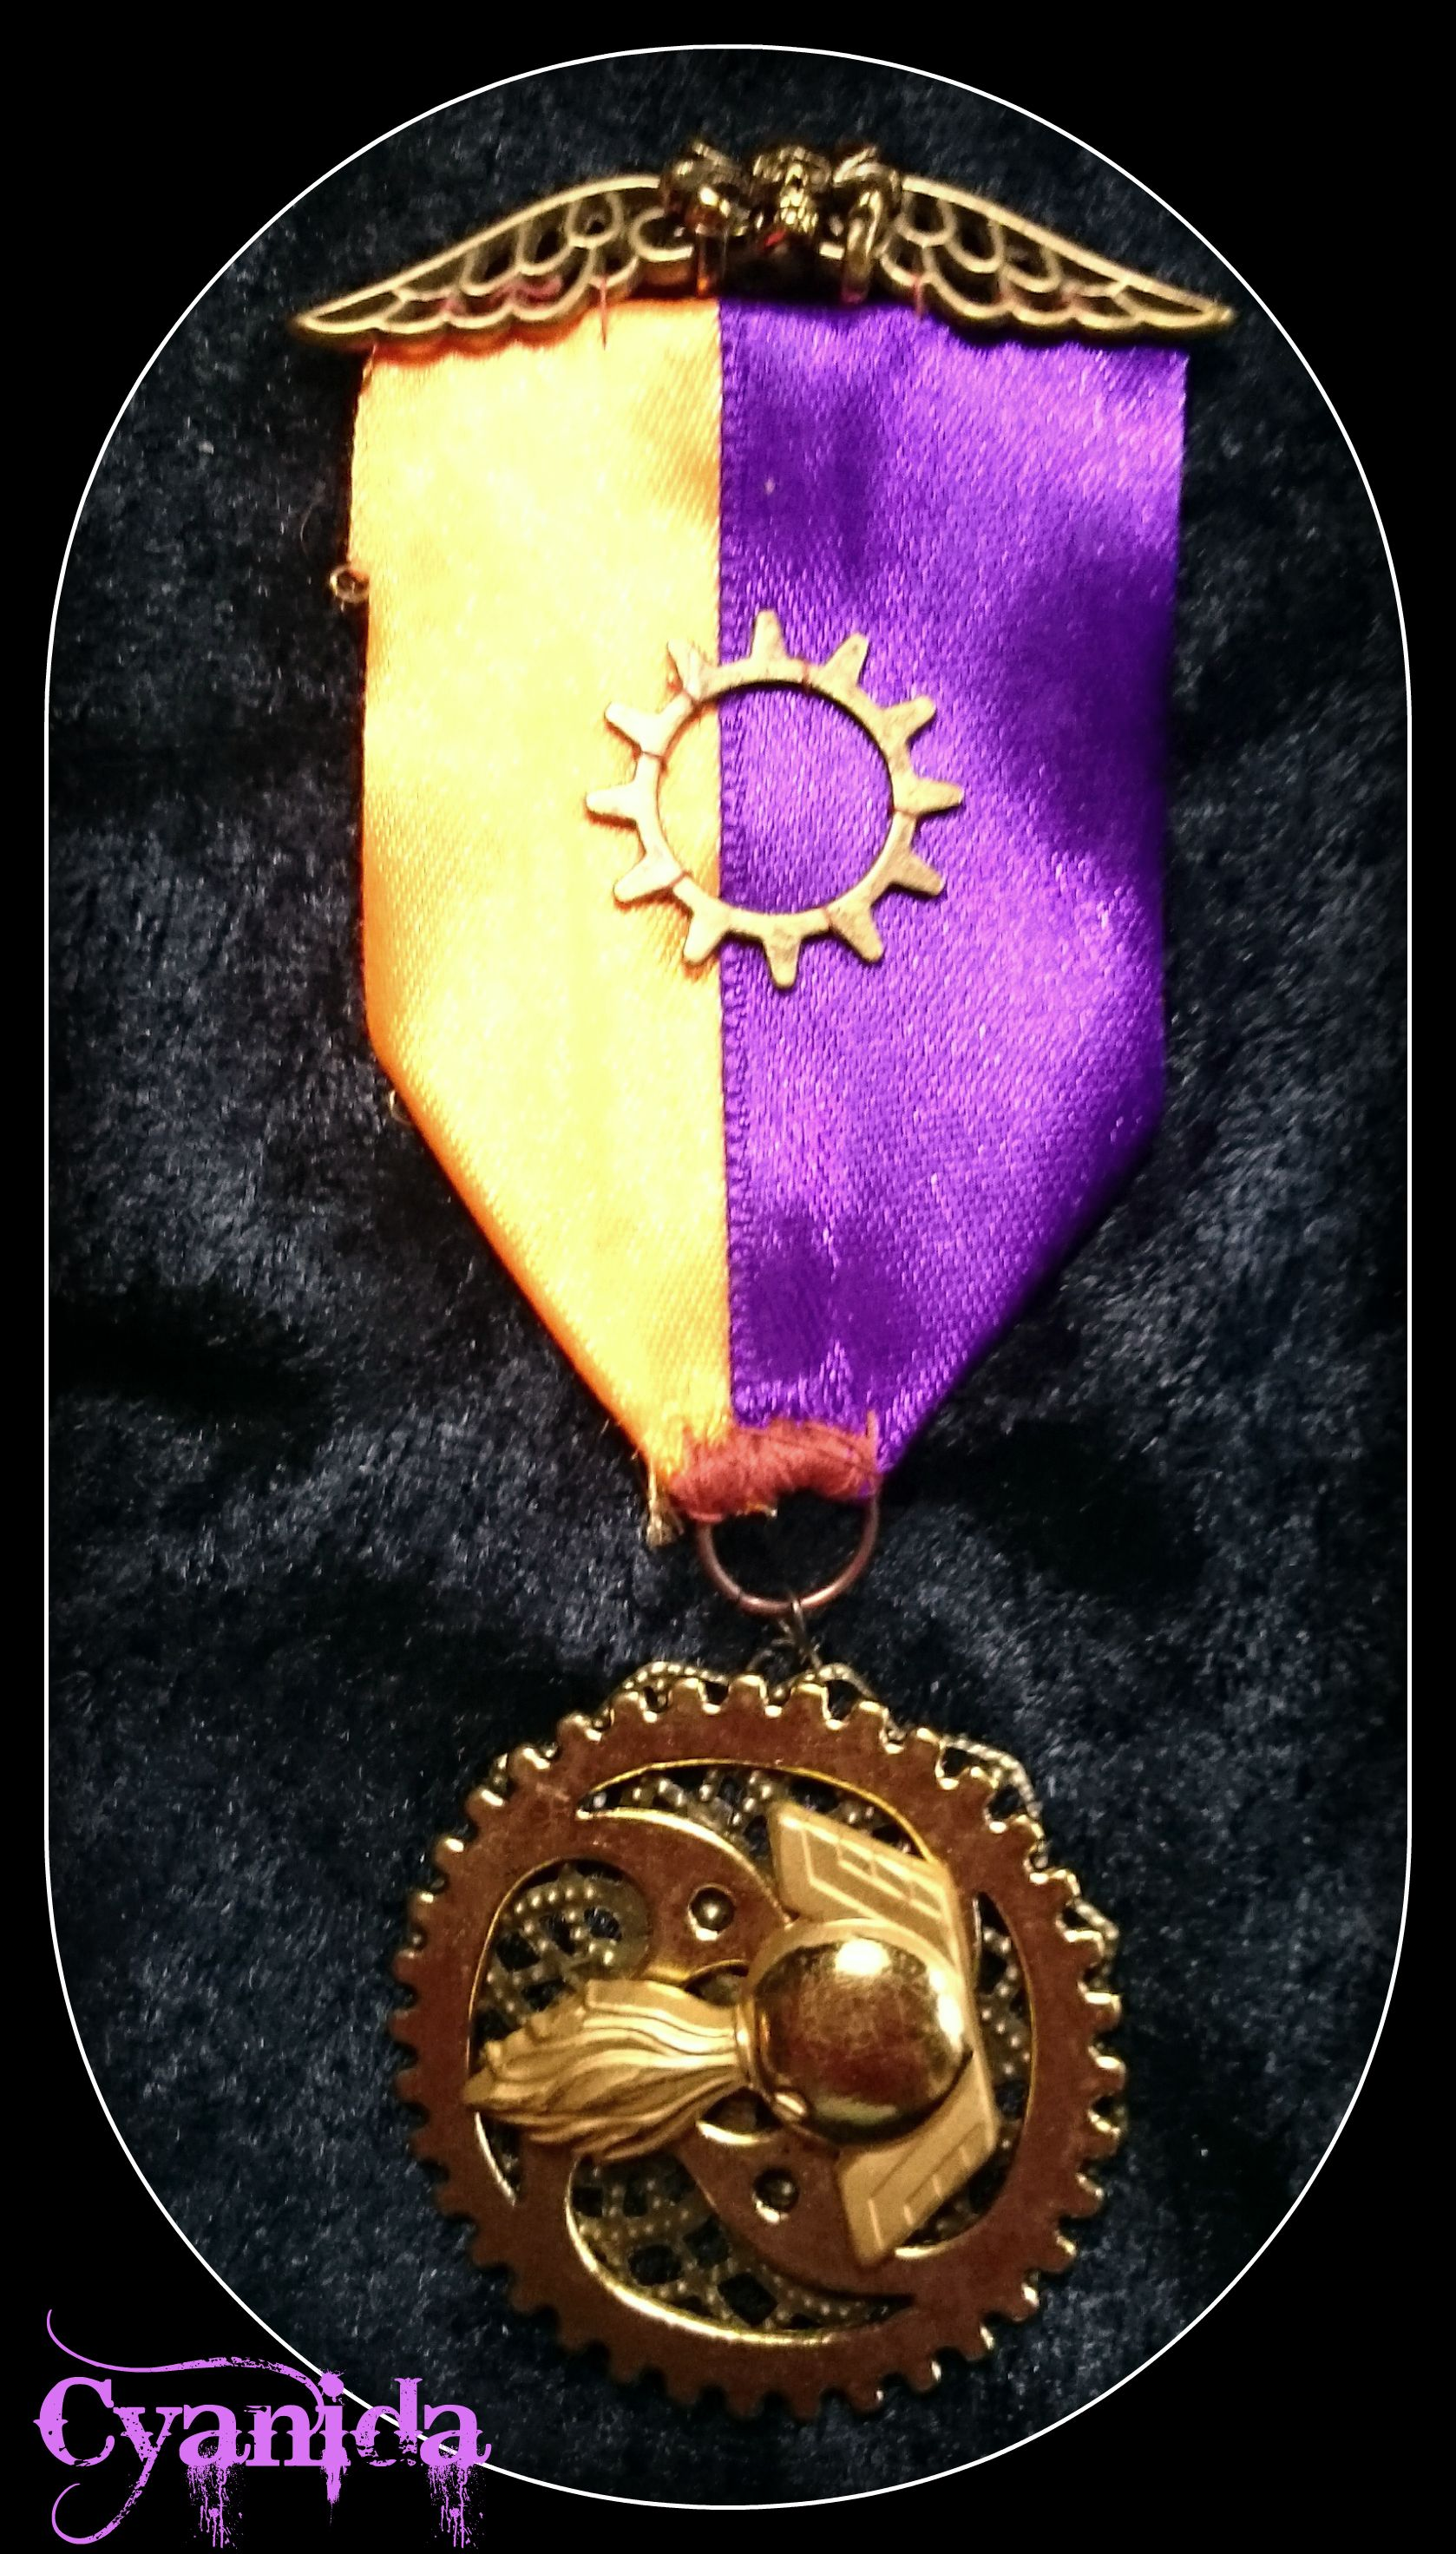 Steampunk medal made by Cyanida